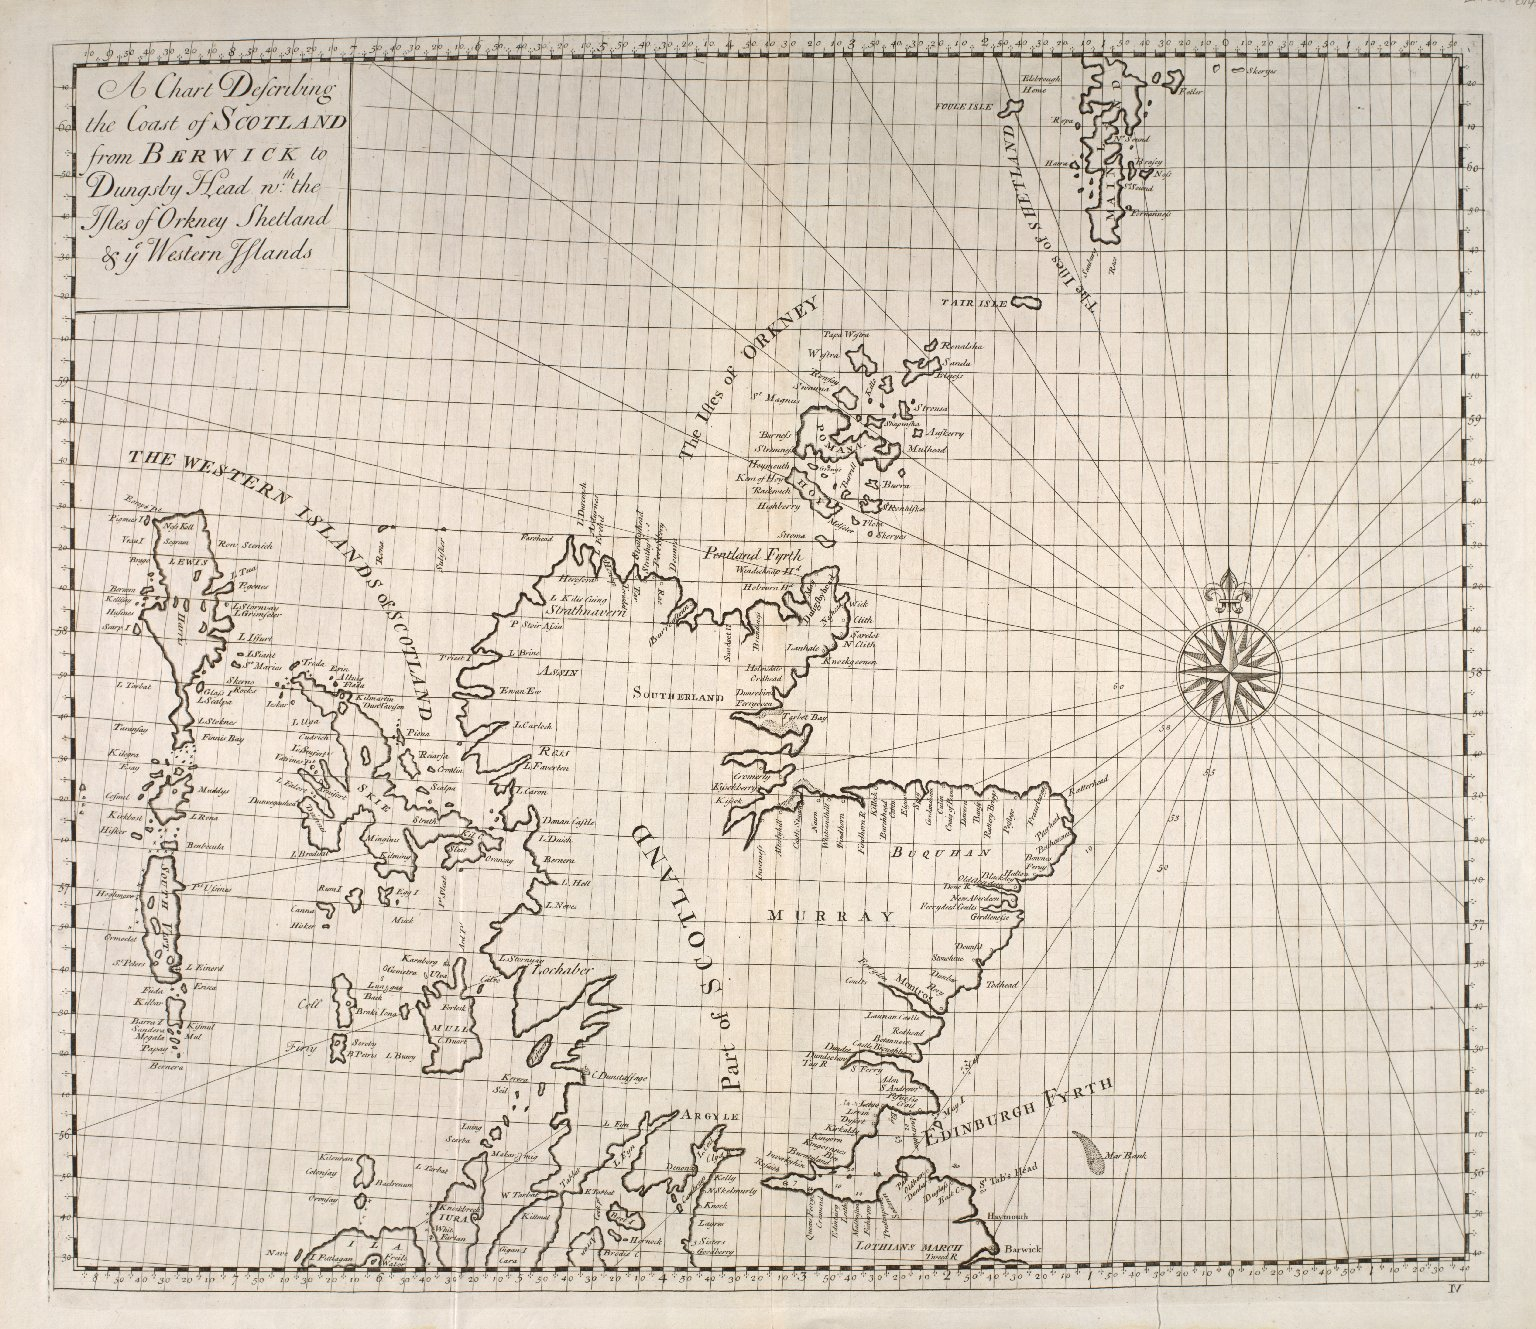 A Chart Describing the Coast of Scotland from Berwick to Dungsby Head wth the Isles of Orkney Shetland & ye Western Islands. [1 of 1]